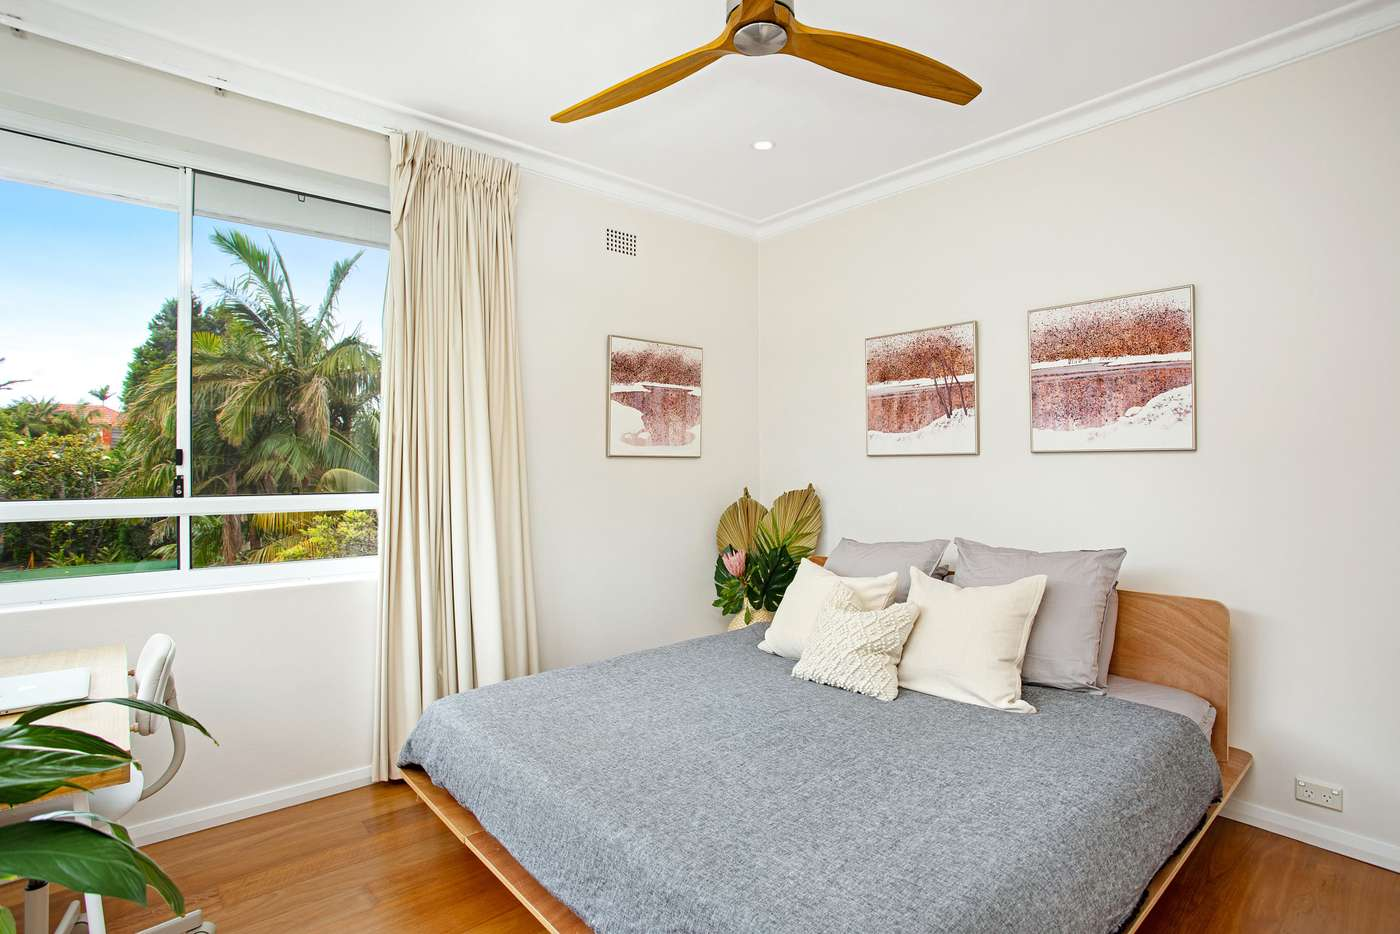 Fifth view of Homely apartment listing, 12/26 Bennett Street, Cremorne NSW 2090